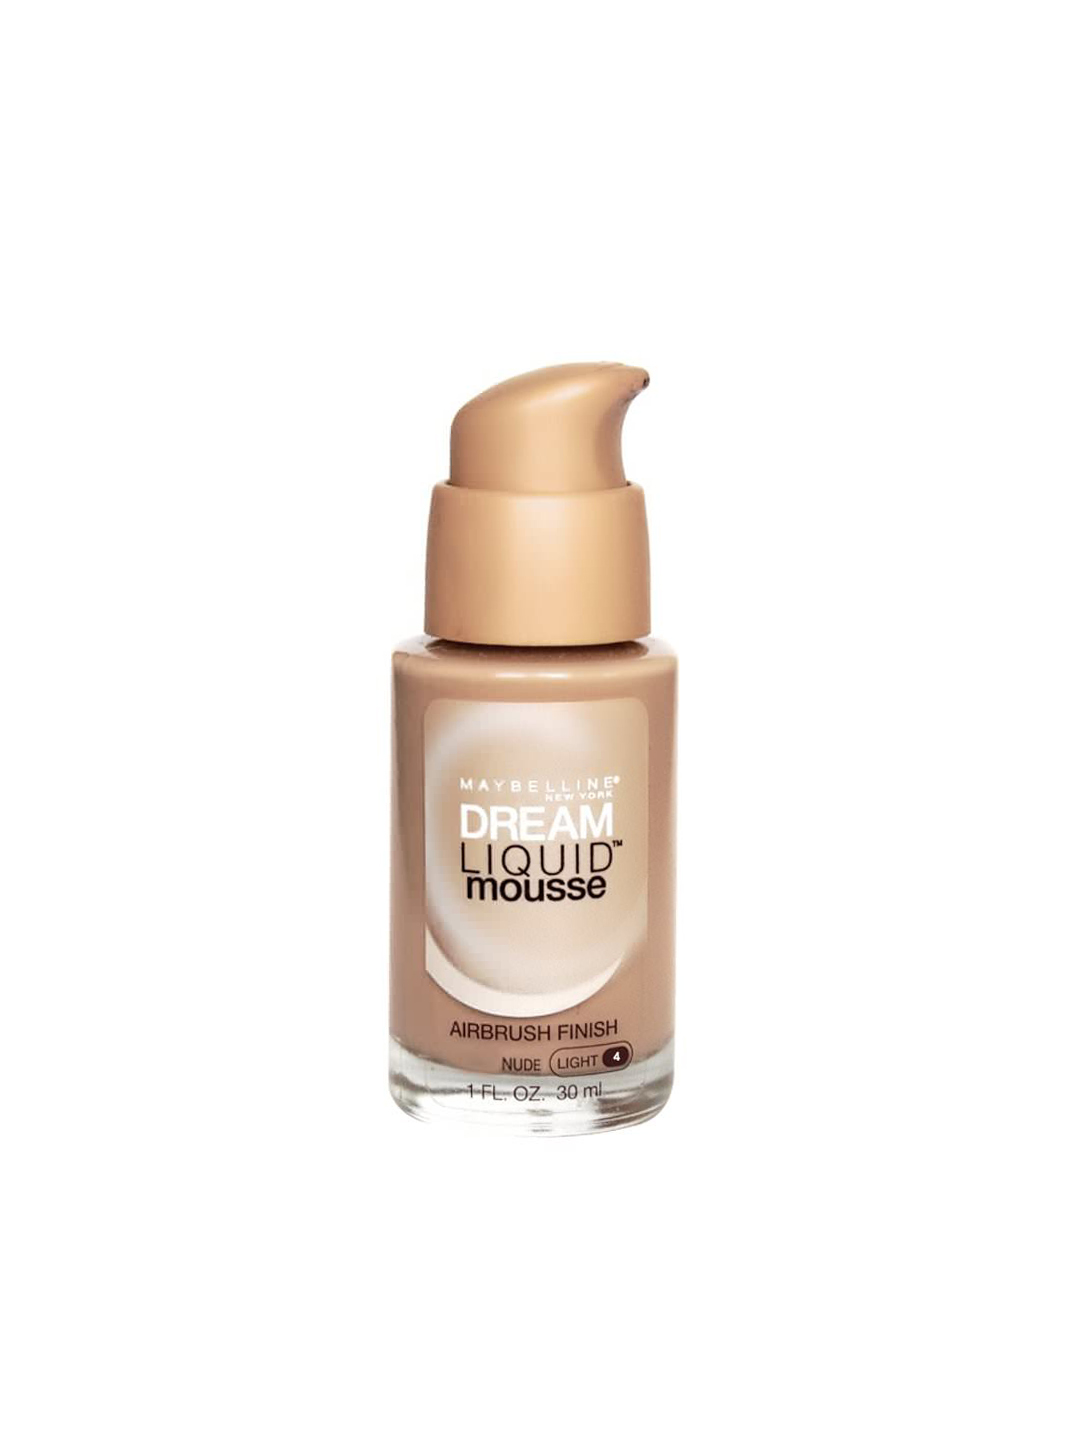 Maybelline-Dream-Nude-Light-Liquid-Mousse-4_e97bbeed267b42384f0a2b7edf6512f0_images